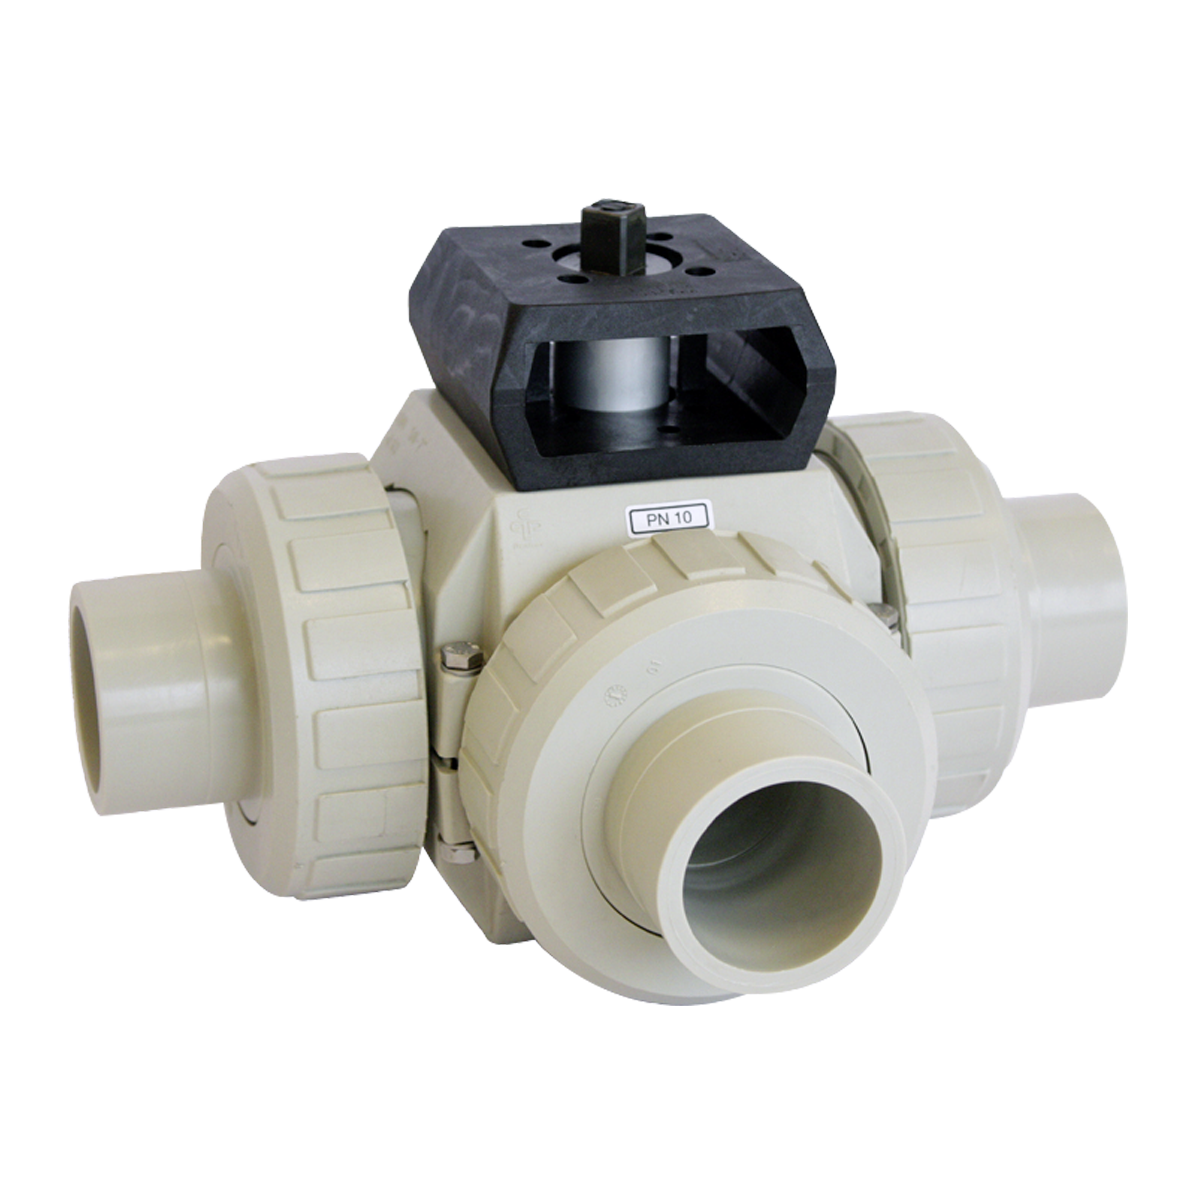 Praher 3-way ball valve S4 with adapterset PP, beige, black